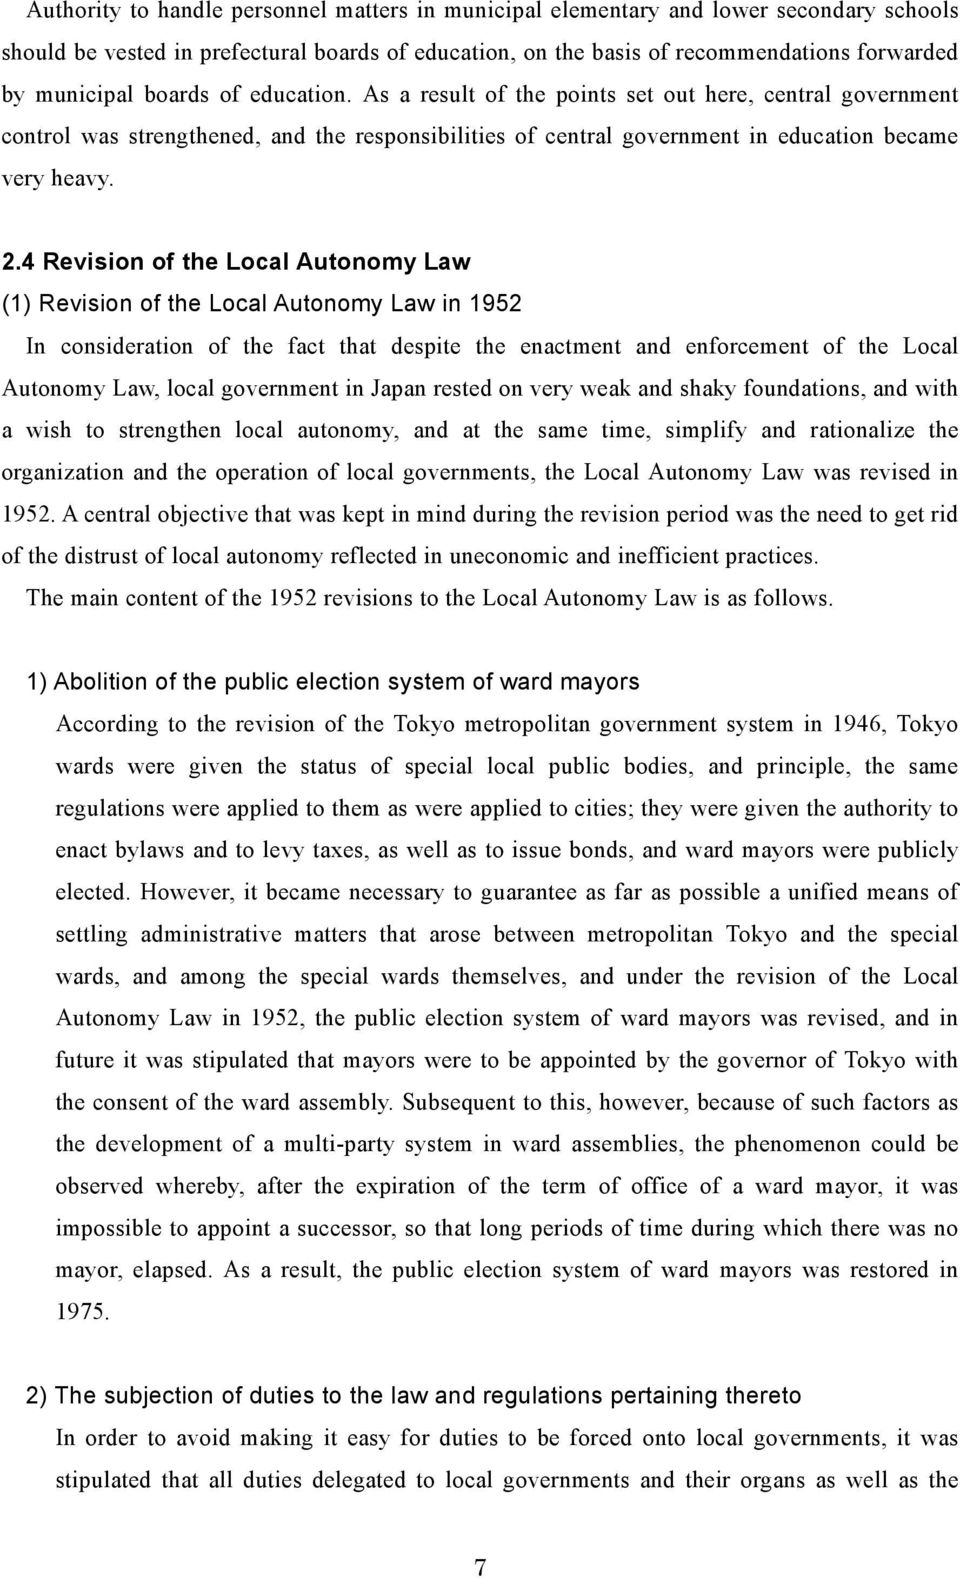 4 Revision of the Local Autonomy Law (1) Revision of the Local Autonomy Law in 1952 In consideration of the fact that despite the enactment and enforcement of the Local Autonomy Law, local government